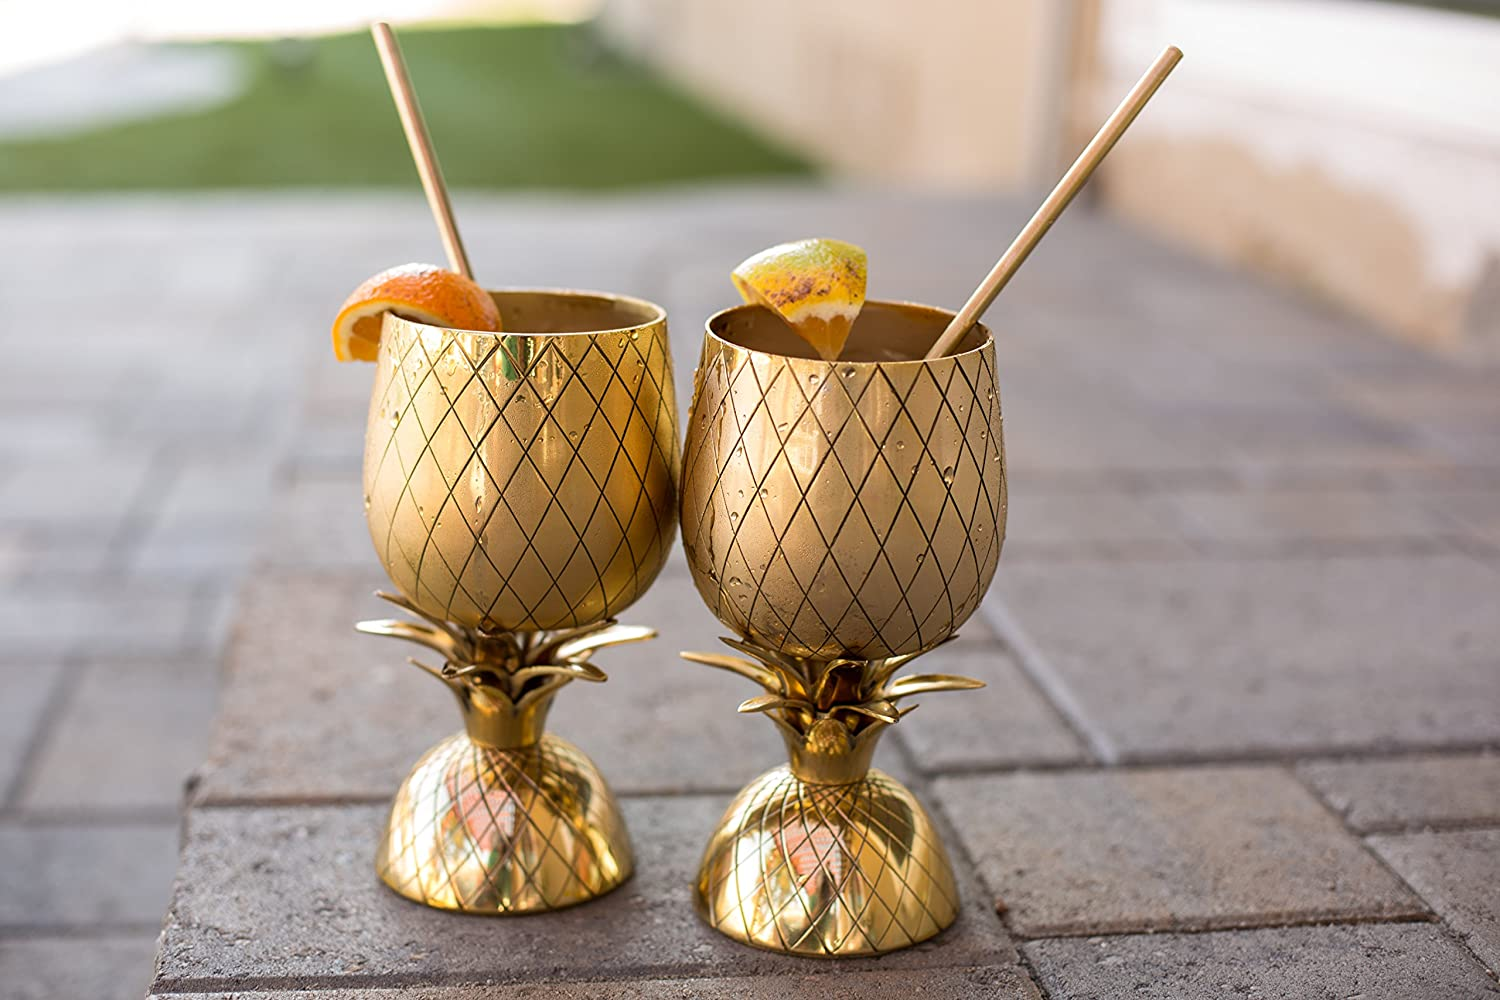 https://www.amazon.com/Handcrafted-Brass-Pineapple-Moscow-Mule/dp/B011N5A0IM/ref=as_li_ss_tl?ie=UTF8&qid=1472243527&sr=8-1&keywords=Handcrafted+Brass+Pineapple+Moscow+Mule+Mug+/+Cup,+20oz+20+oz.+Capacity+for+Moscow+Mules&linkCode=ll1&tag=lunabellaswor-20&linkId=9d2905ee789b0863251b47f1859c55e9